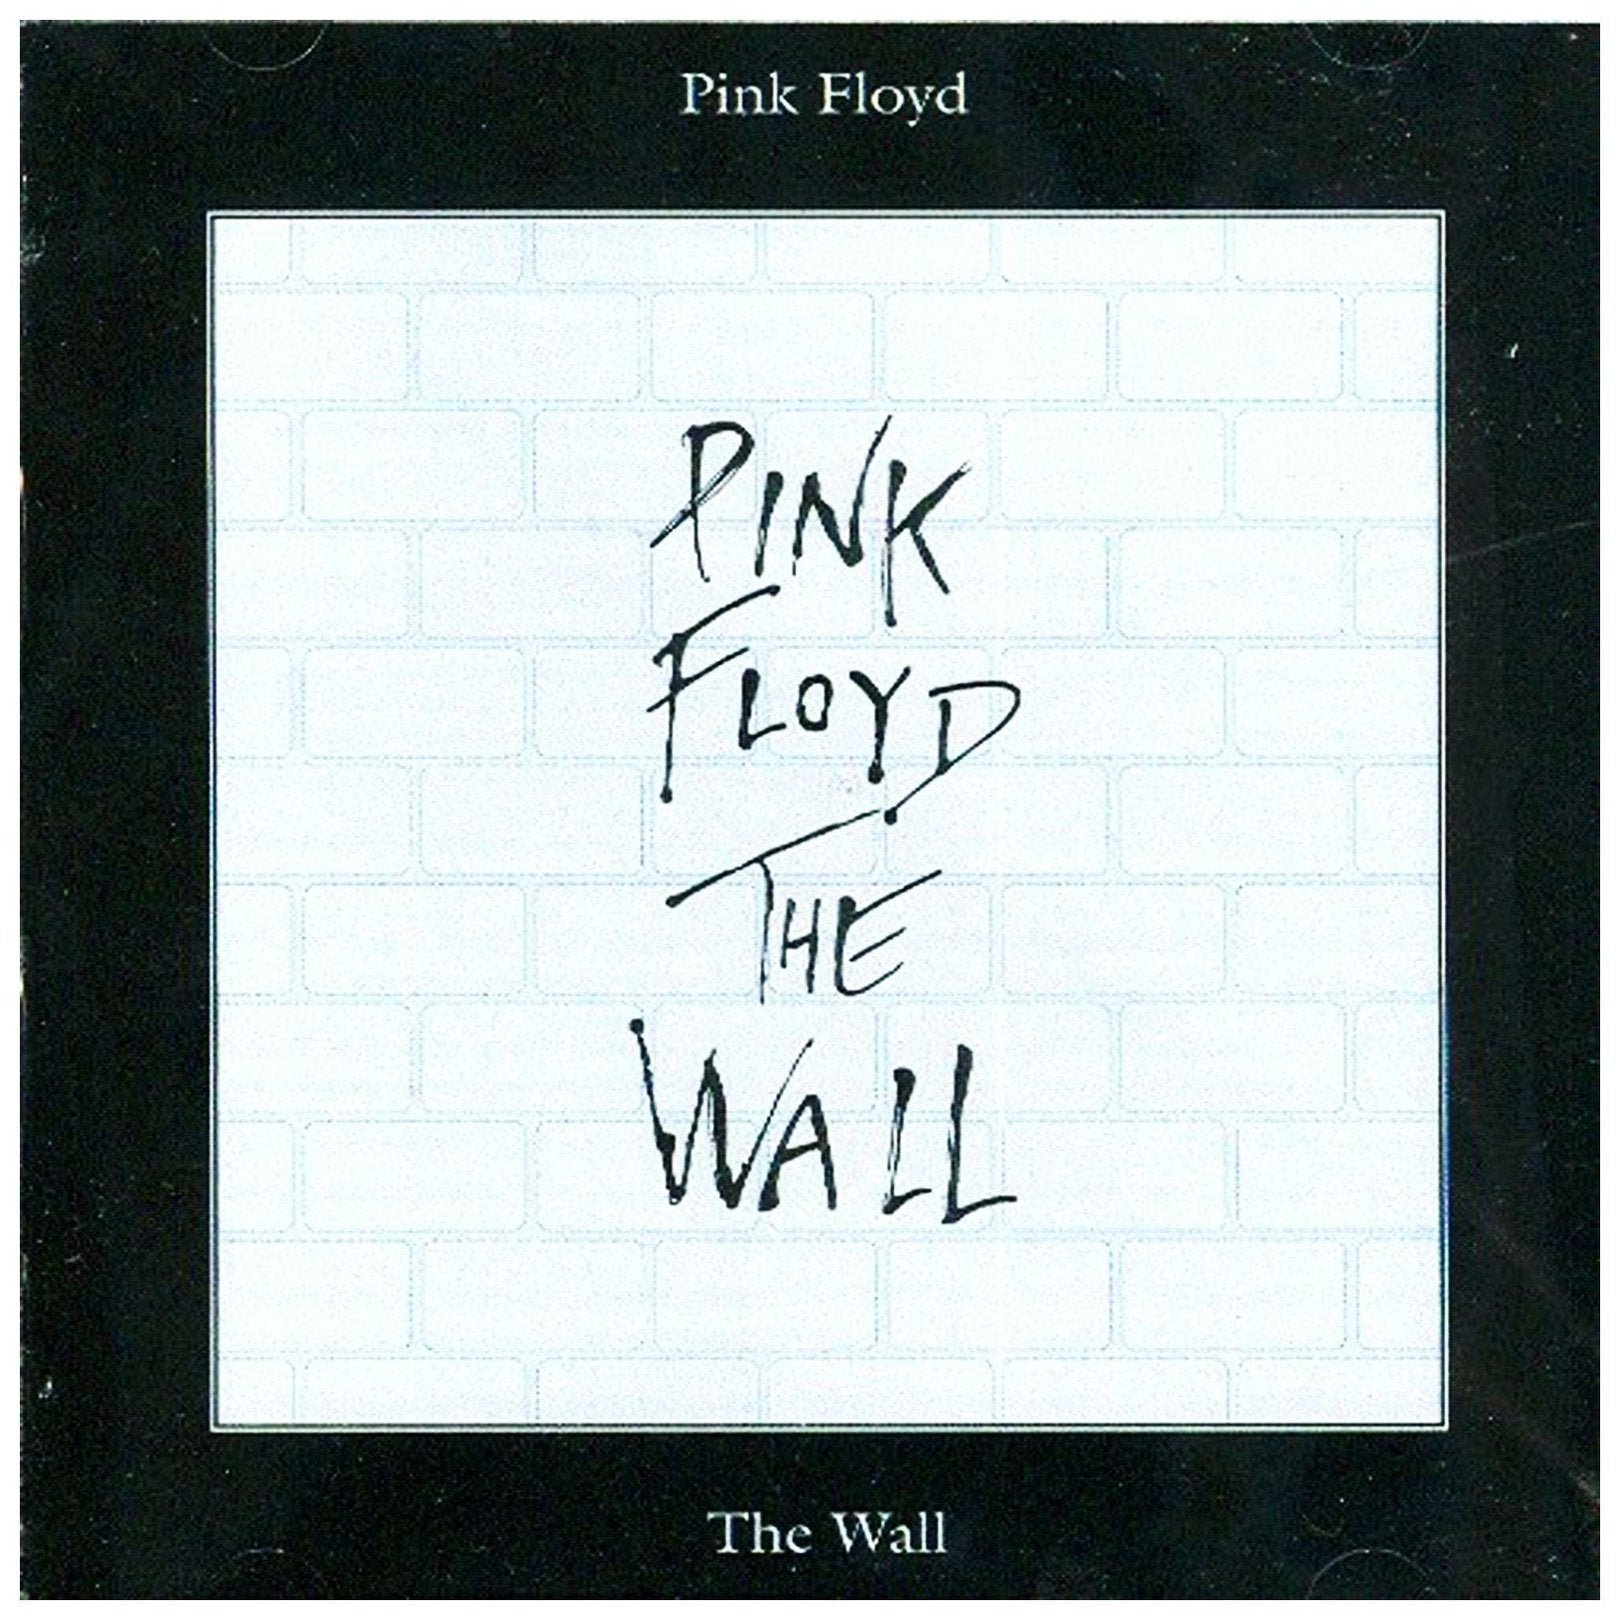 Pink Floyd - Pink Floyd - The Wall - 2 Cd